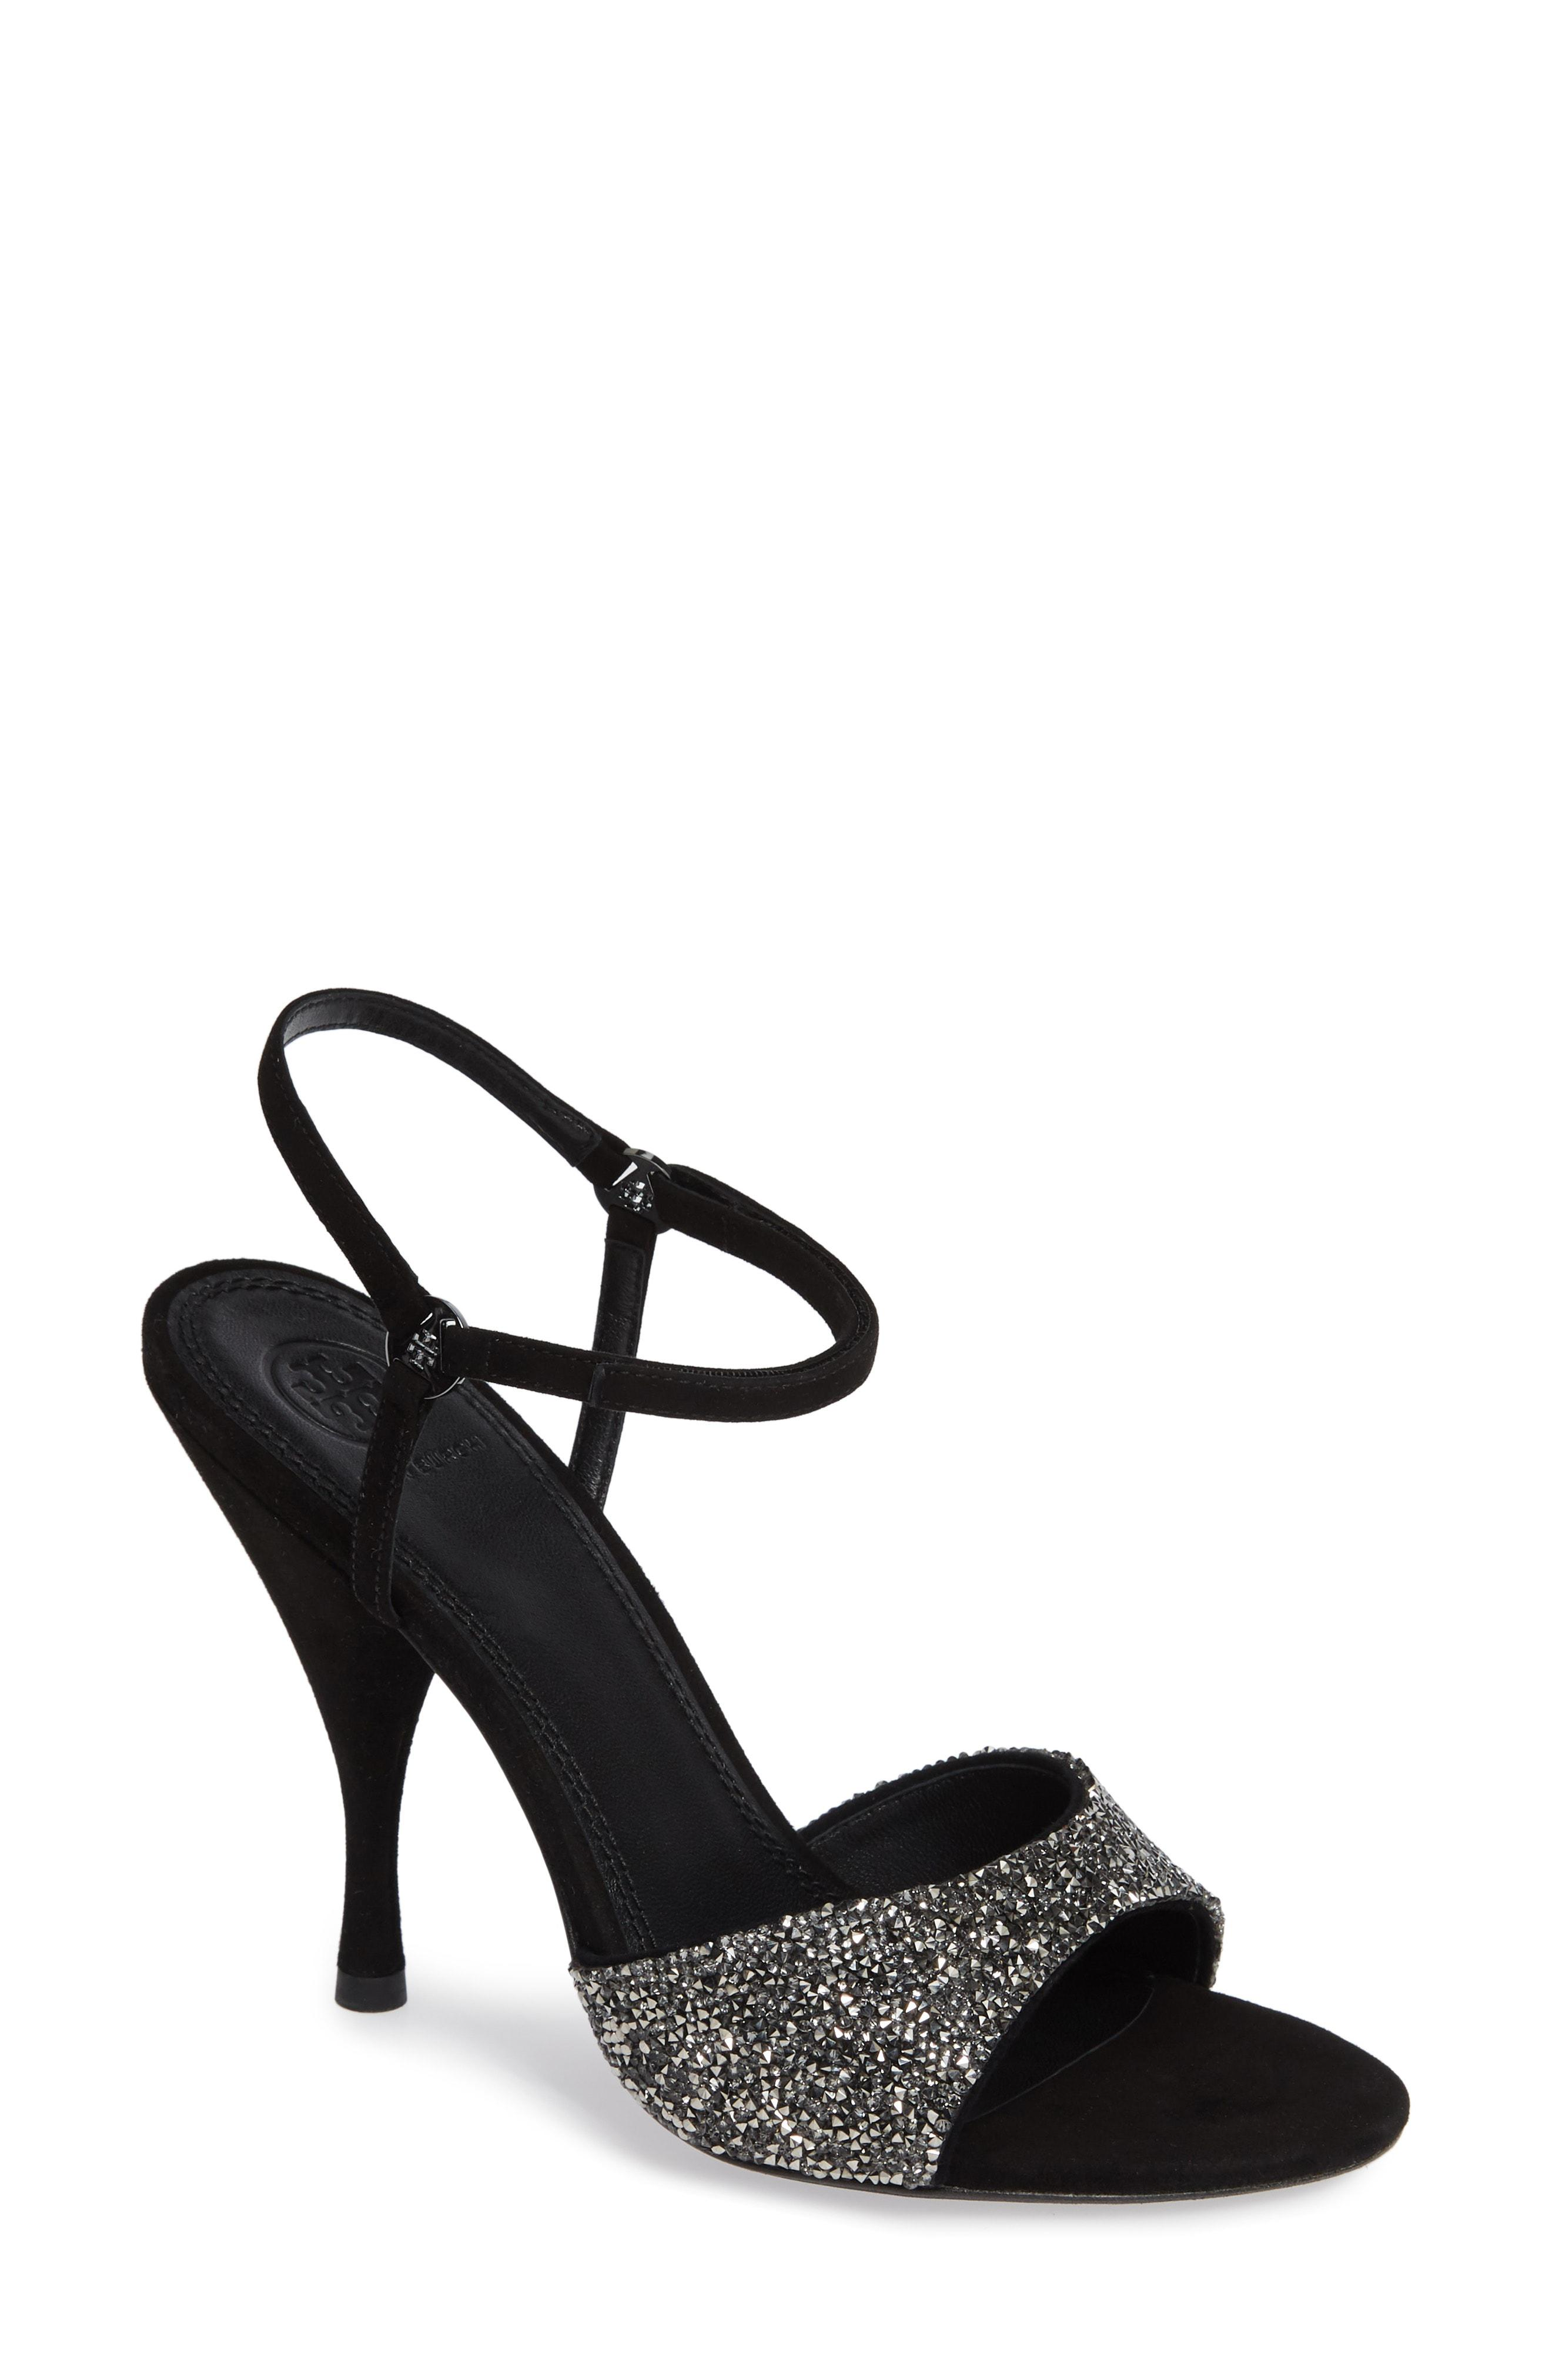 fd890570a Lyst - Tory Burch Elodie 105mm Ankle-strap Sandals in Black